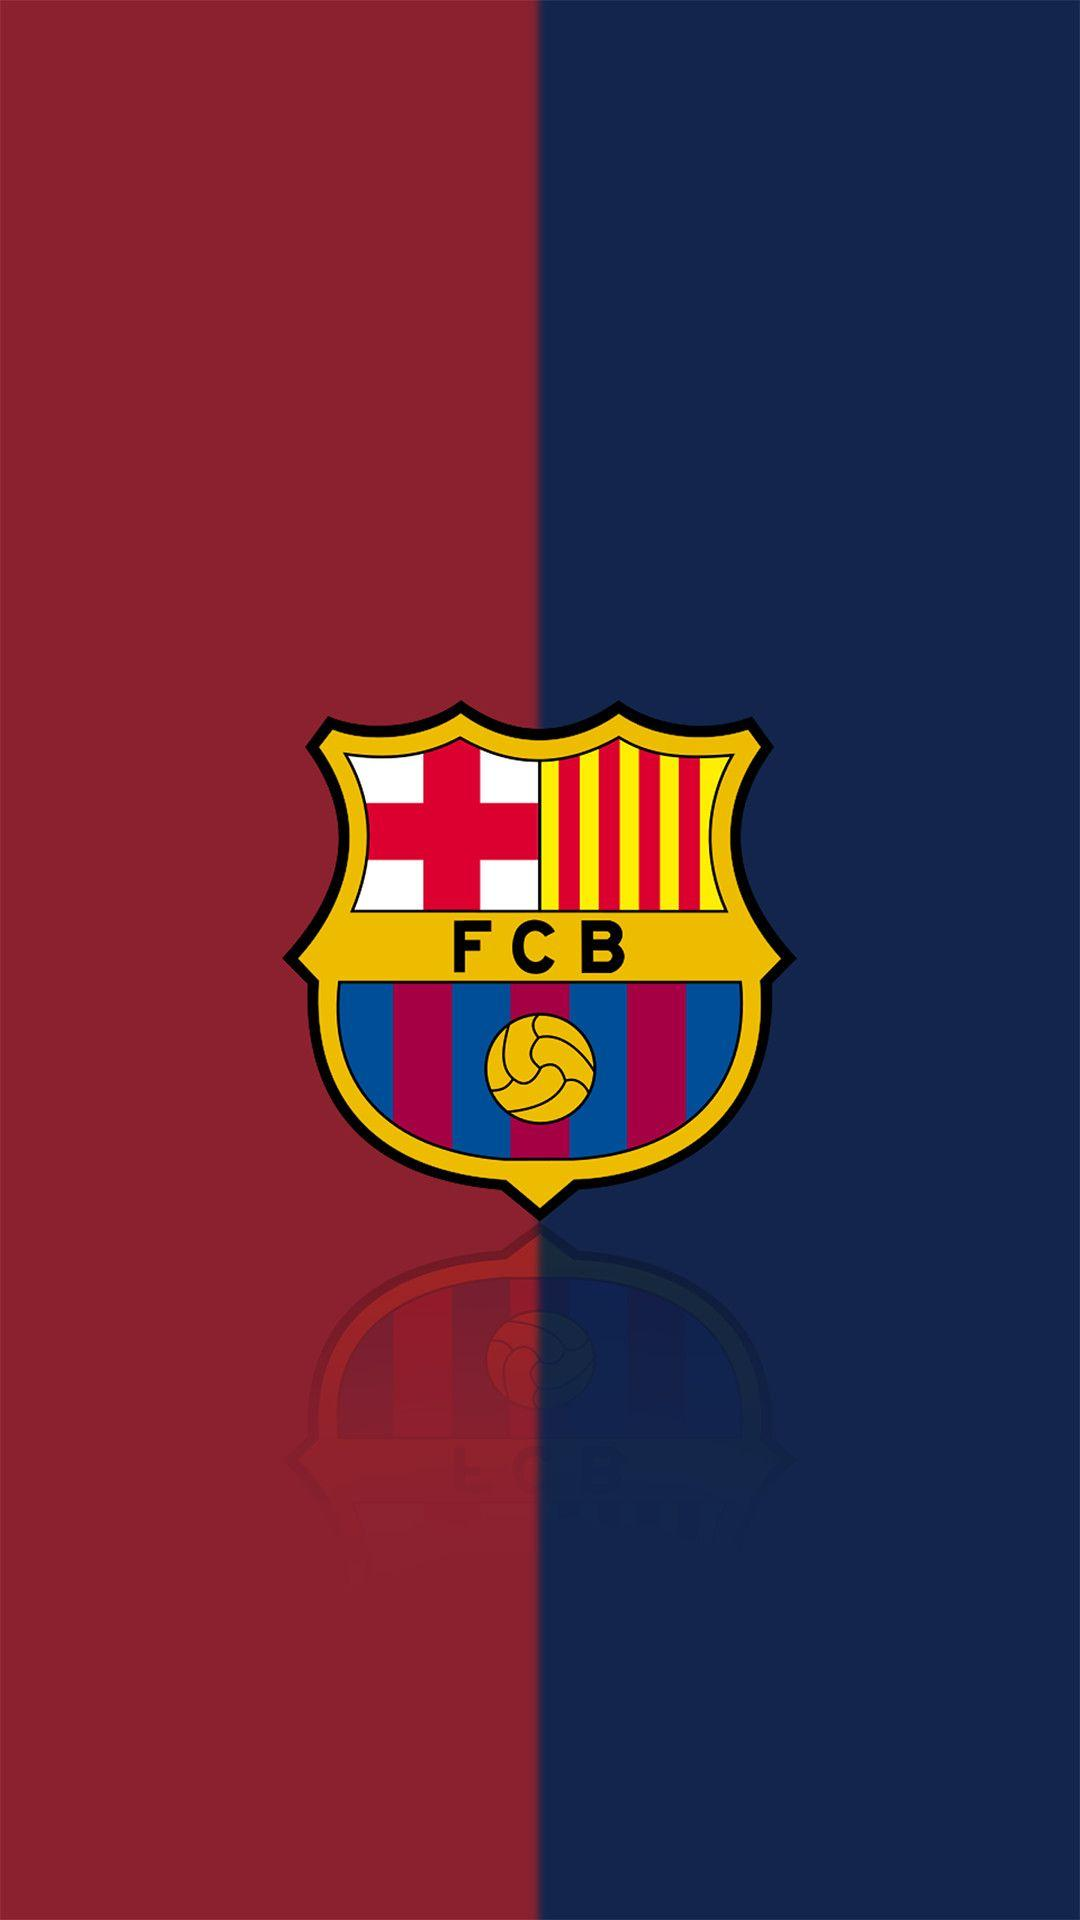 fc barcelona iphone wallpapers top free fc barcelona iphone backgrounds wallpaperaccess fc barcelona iphone wallpapers top